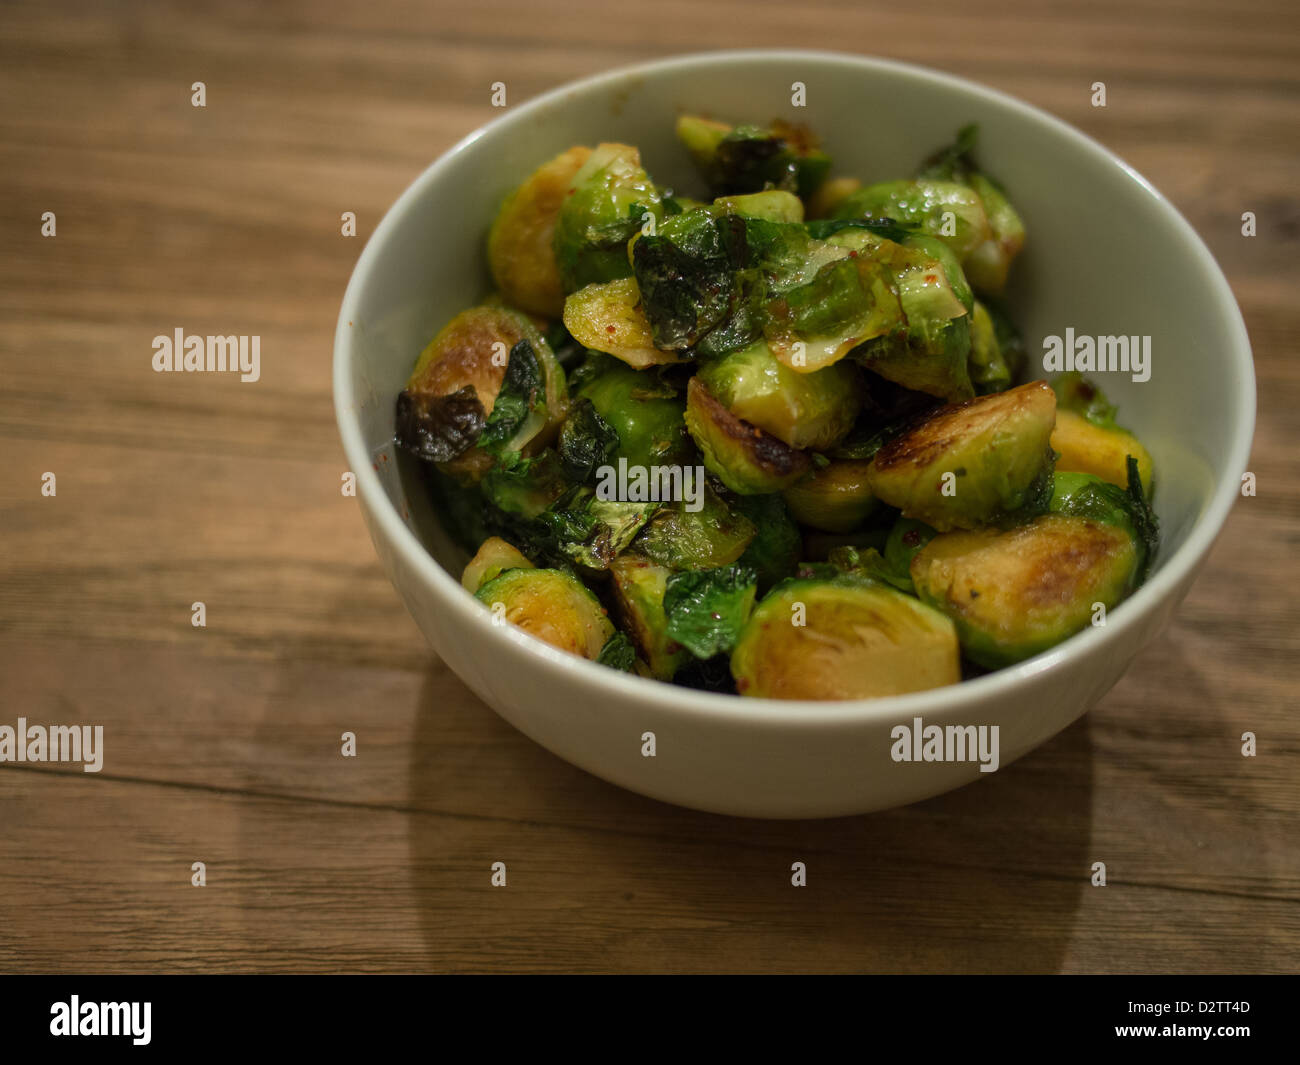 Grilled Brussel sprouts in a bowl on a wooden table - Stock Image